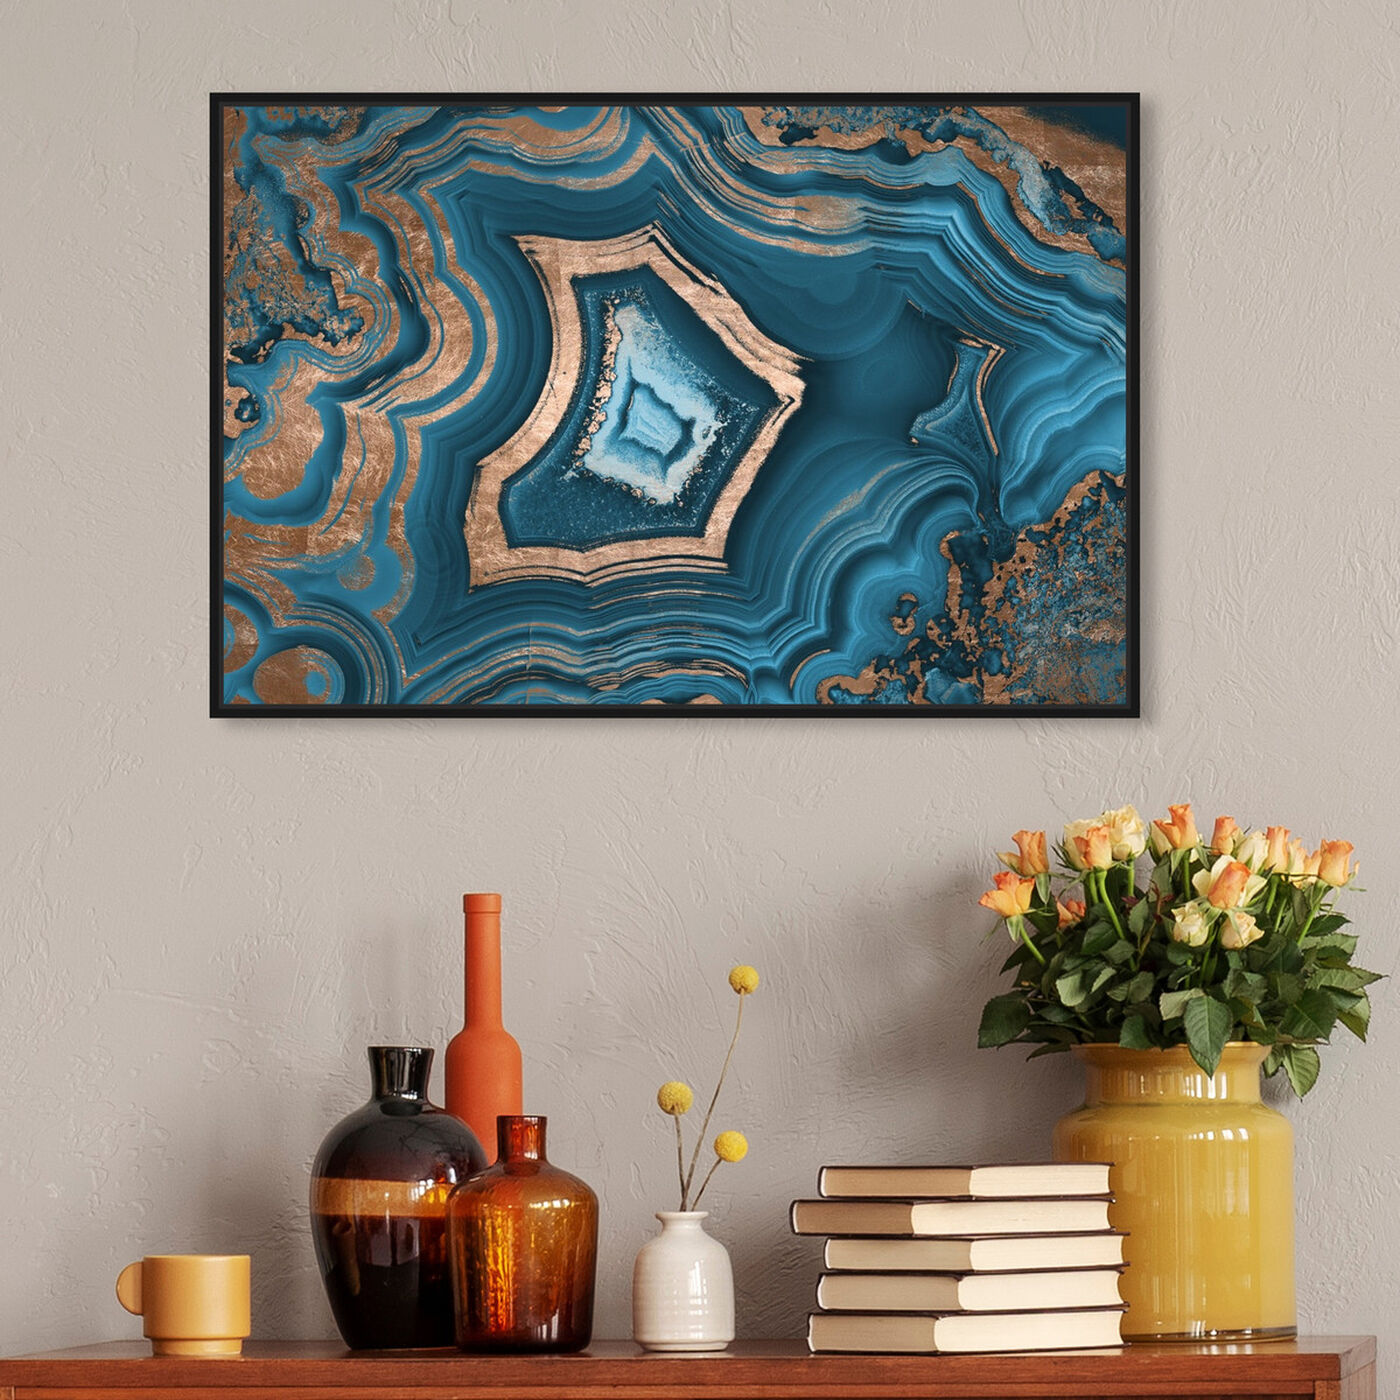 Hanging view of Dreaming About You Geode featuring abstract and crystals art.